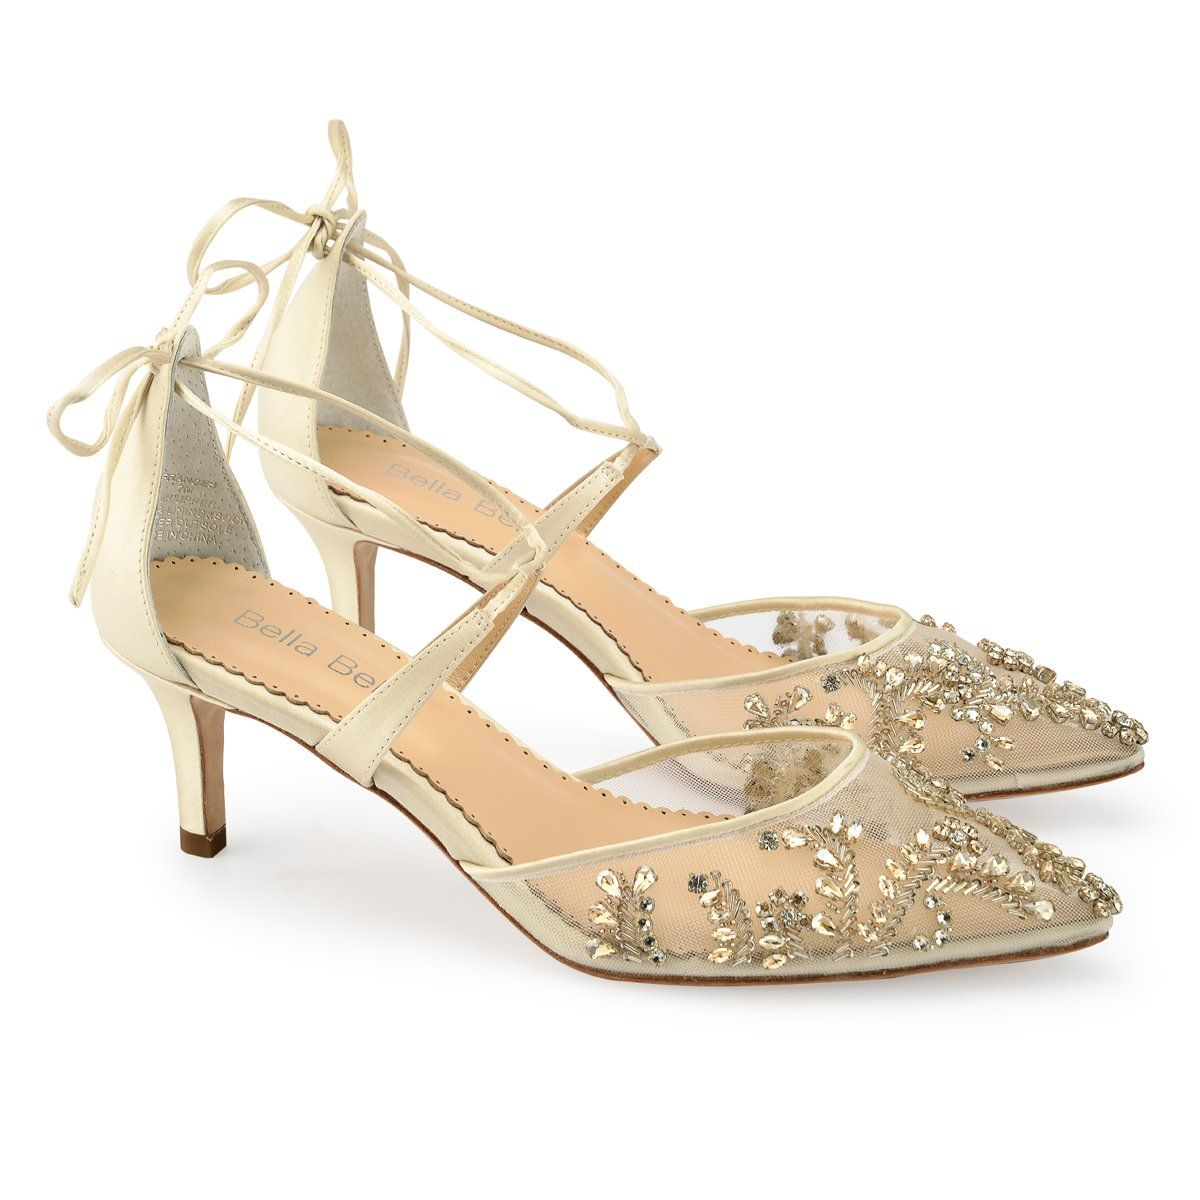 Comfortable Champagne Crystal Low Heel Embellished Wedding Evening Shoes Ankle Tie Evening Shoes Low Heel Gold Wedding Shoes Wedding Shoes Heels